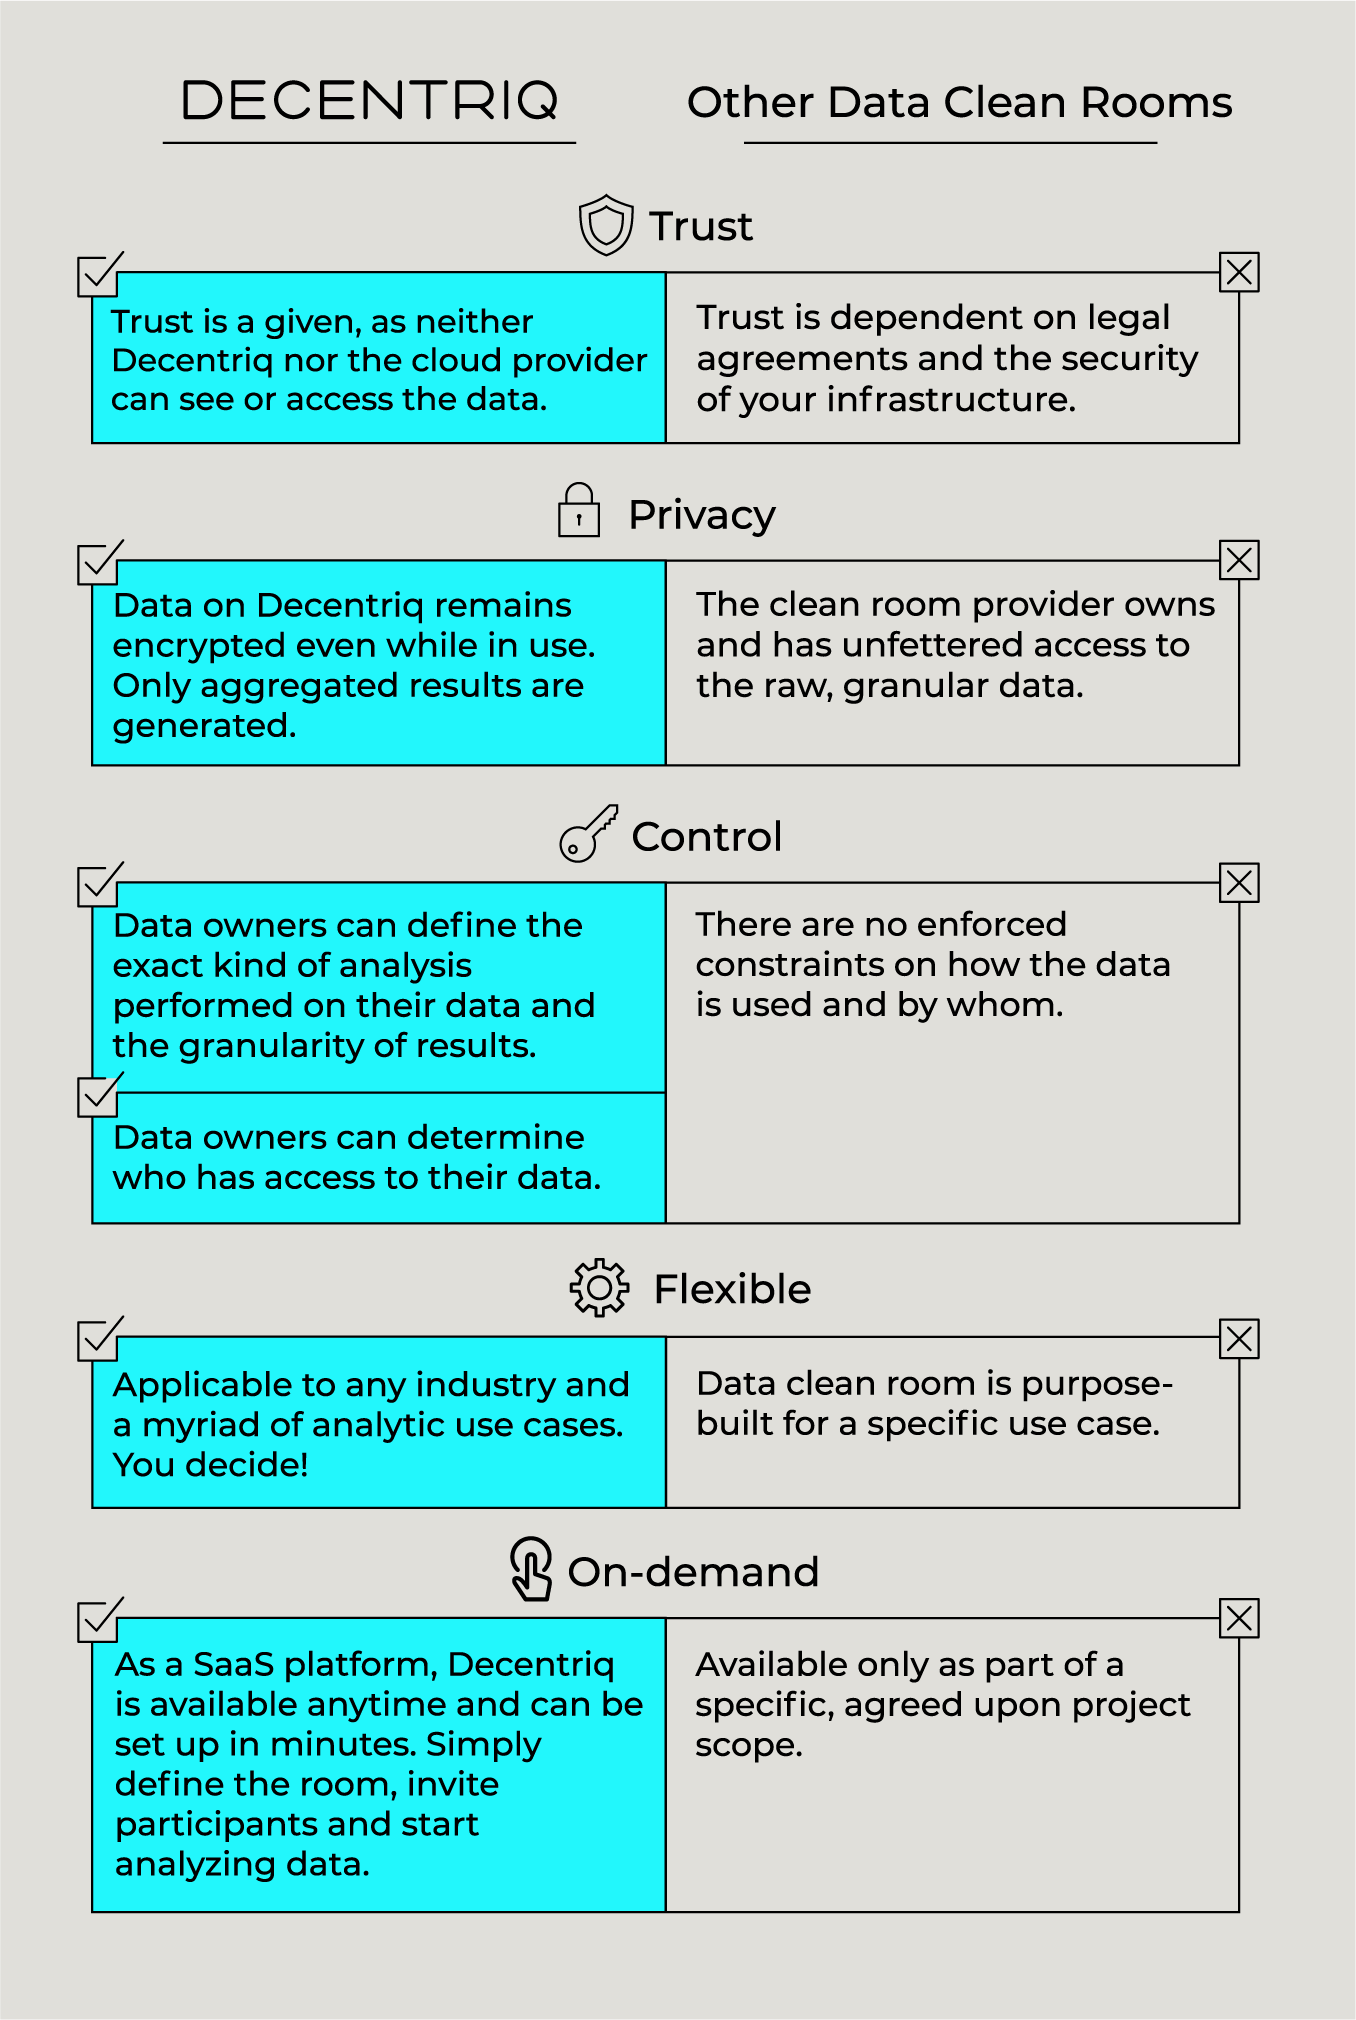 How Decentriq's data clean rooms stand out from the others